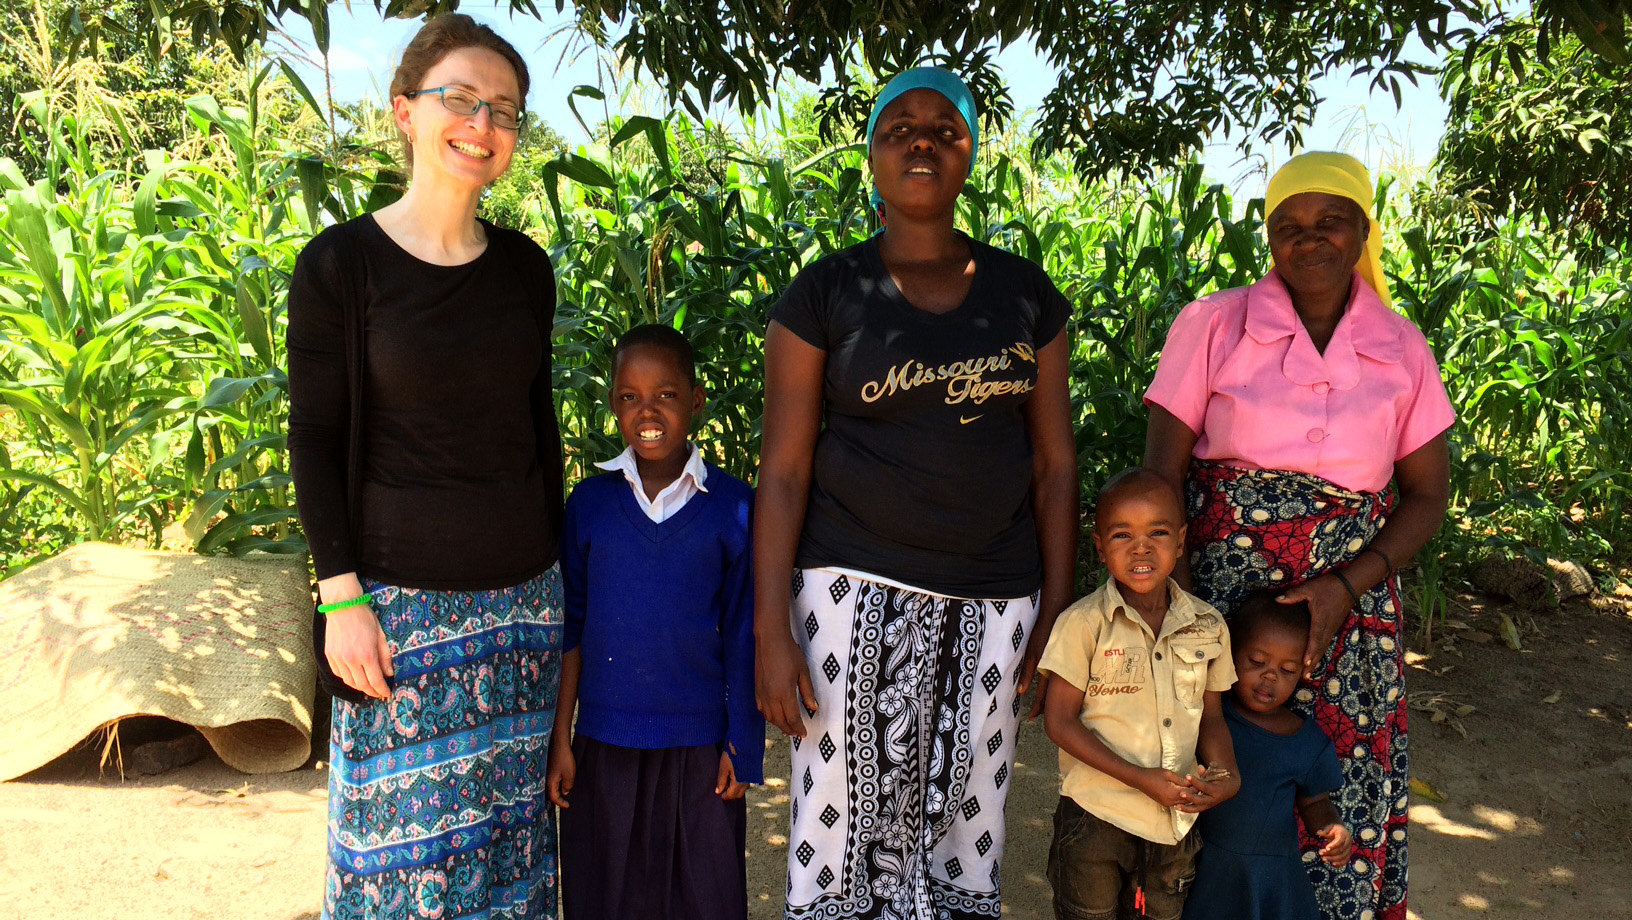 Elizabeth Bowes visits the family of her sponsored child in Tanzania.